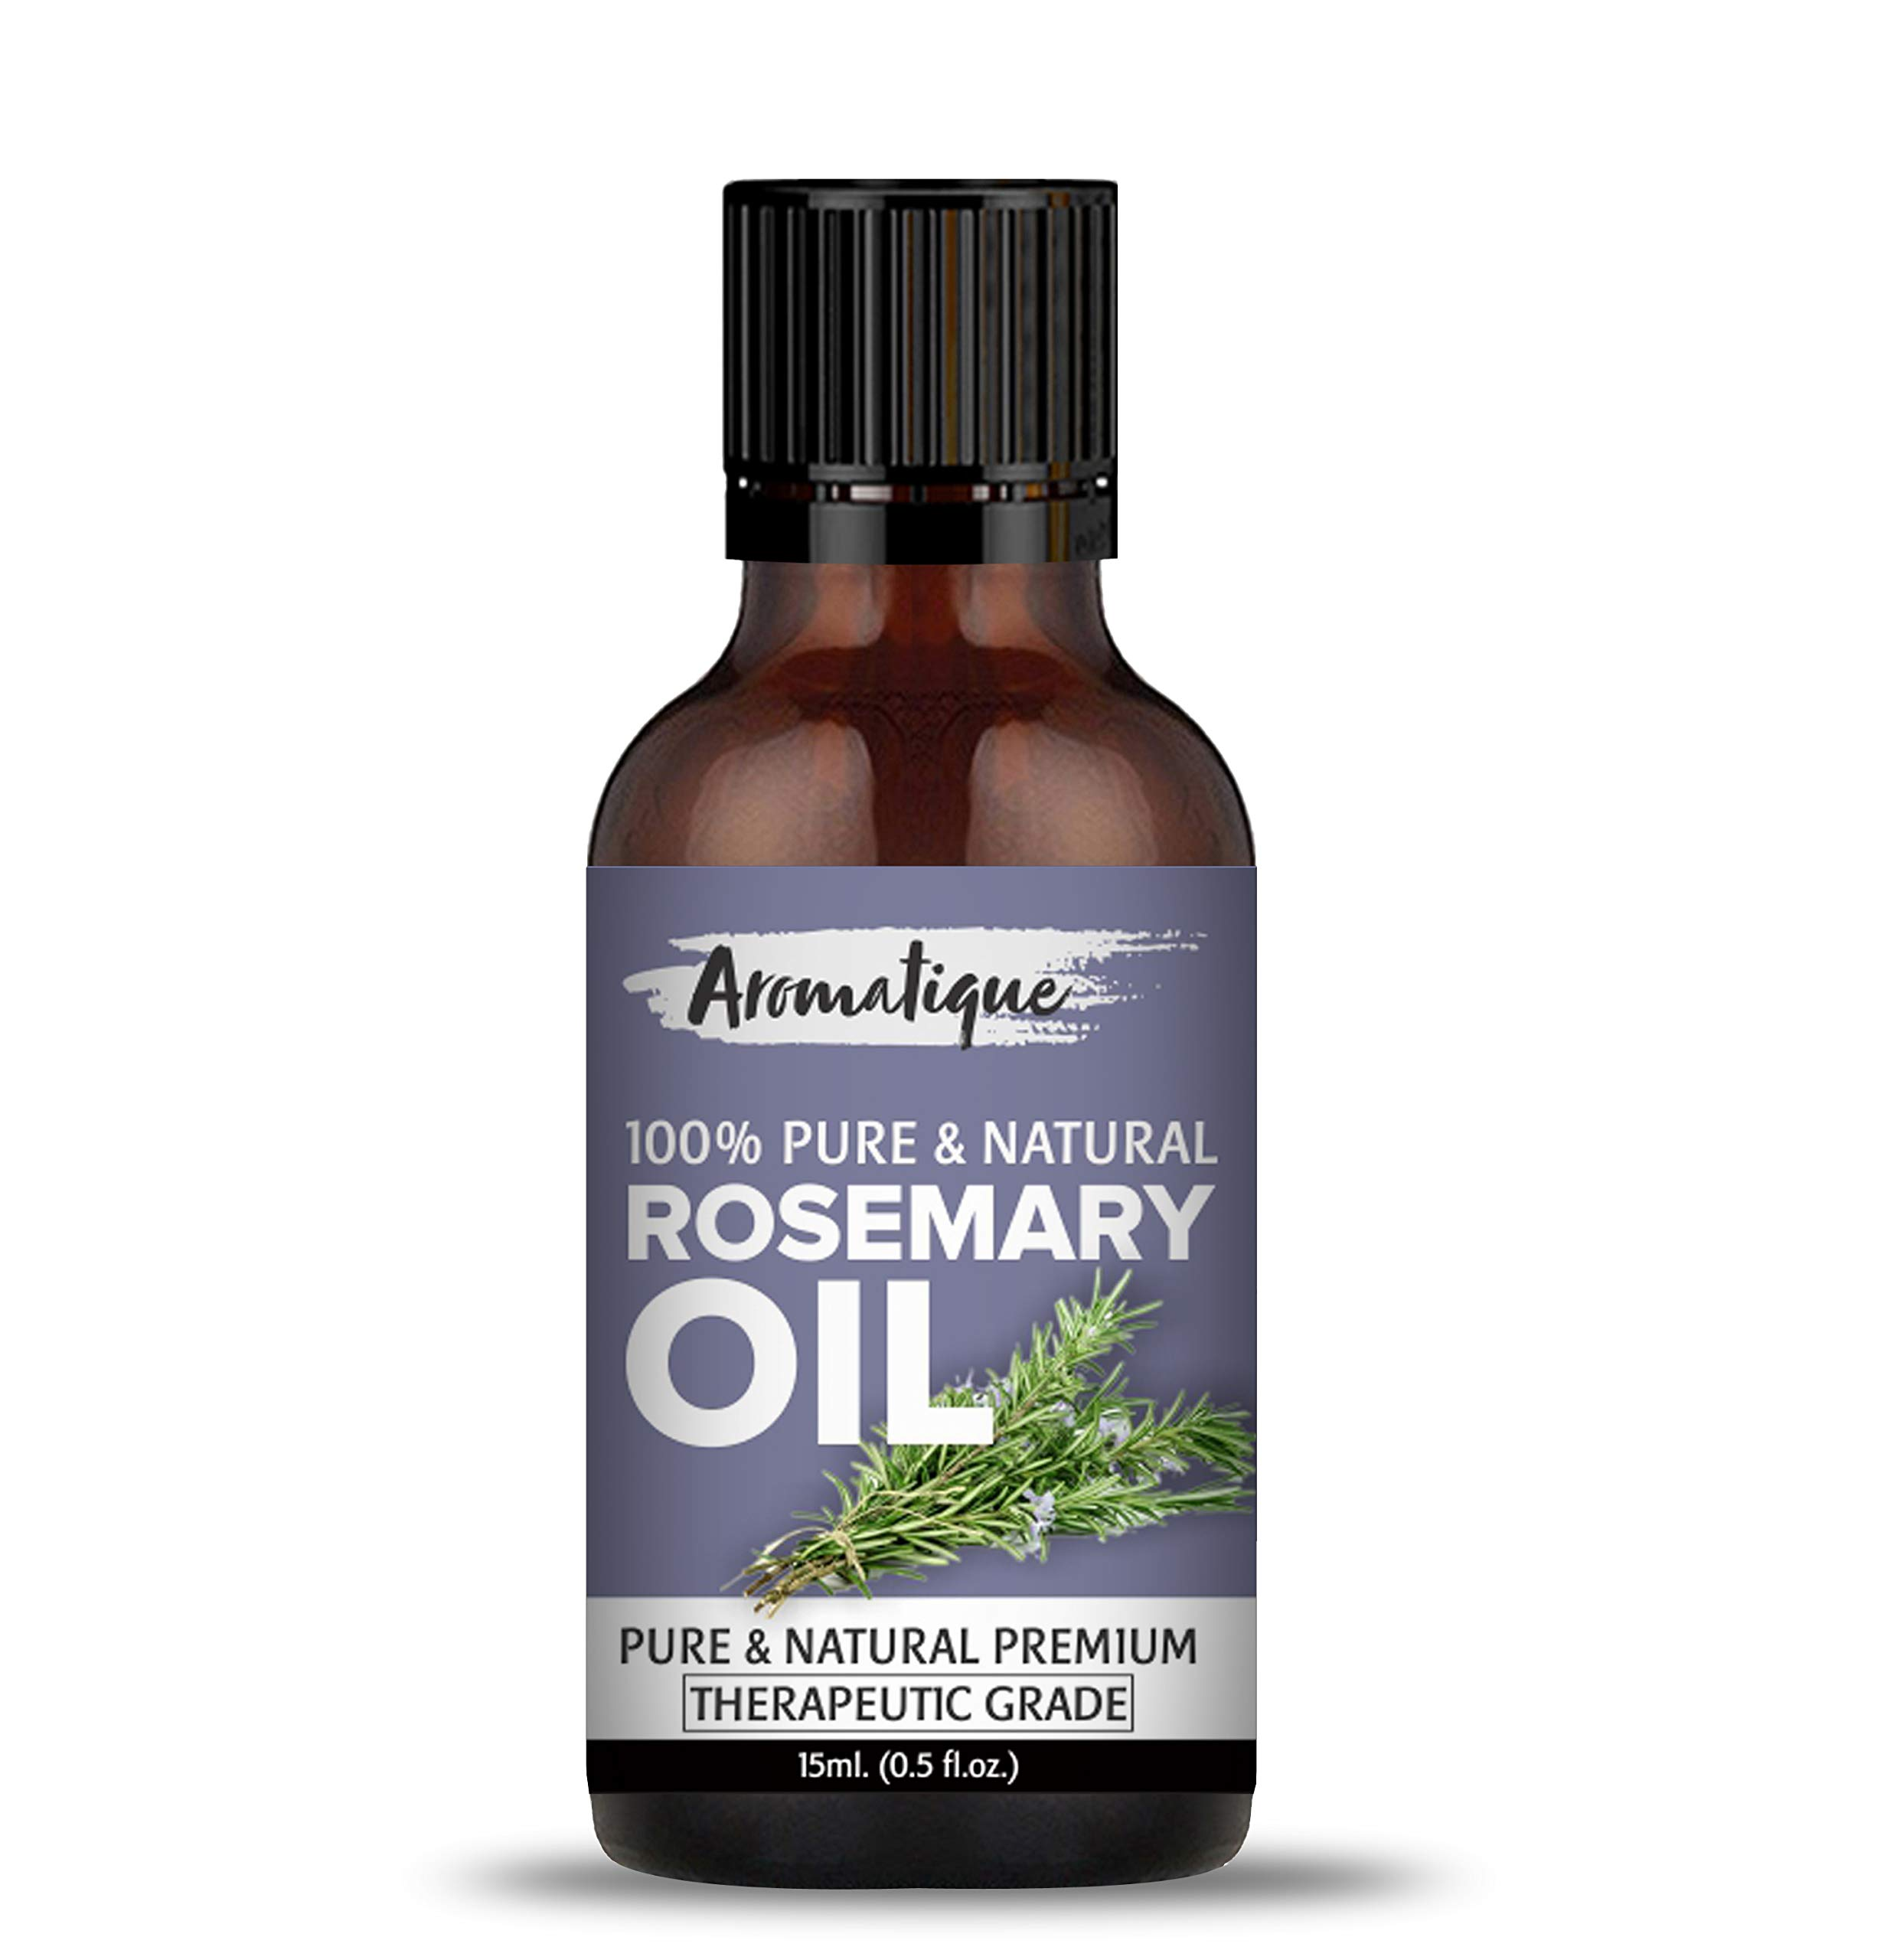 Aromatique Rosemary Essential Oil For Hair Growth,Skin and Body 43% Pure  and Natural Therapeutic Grade (43ml)